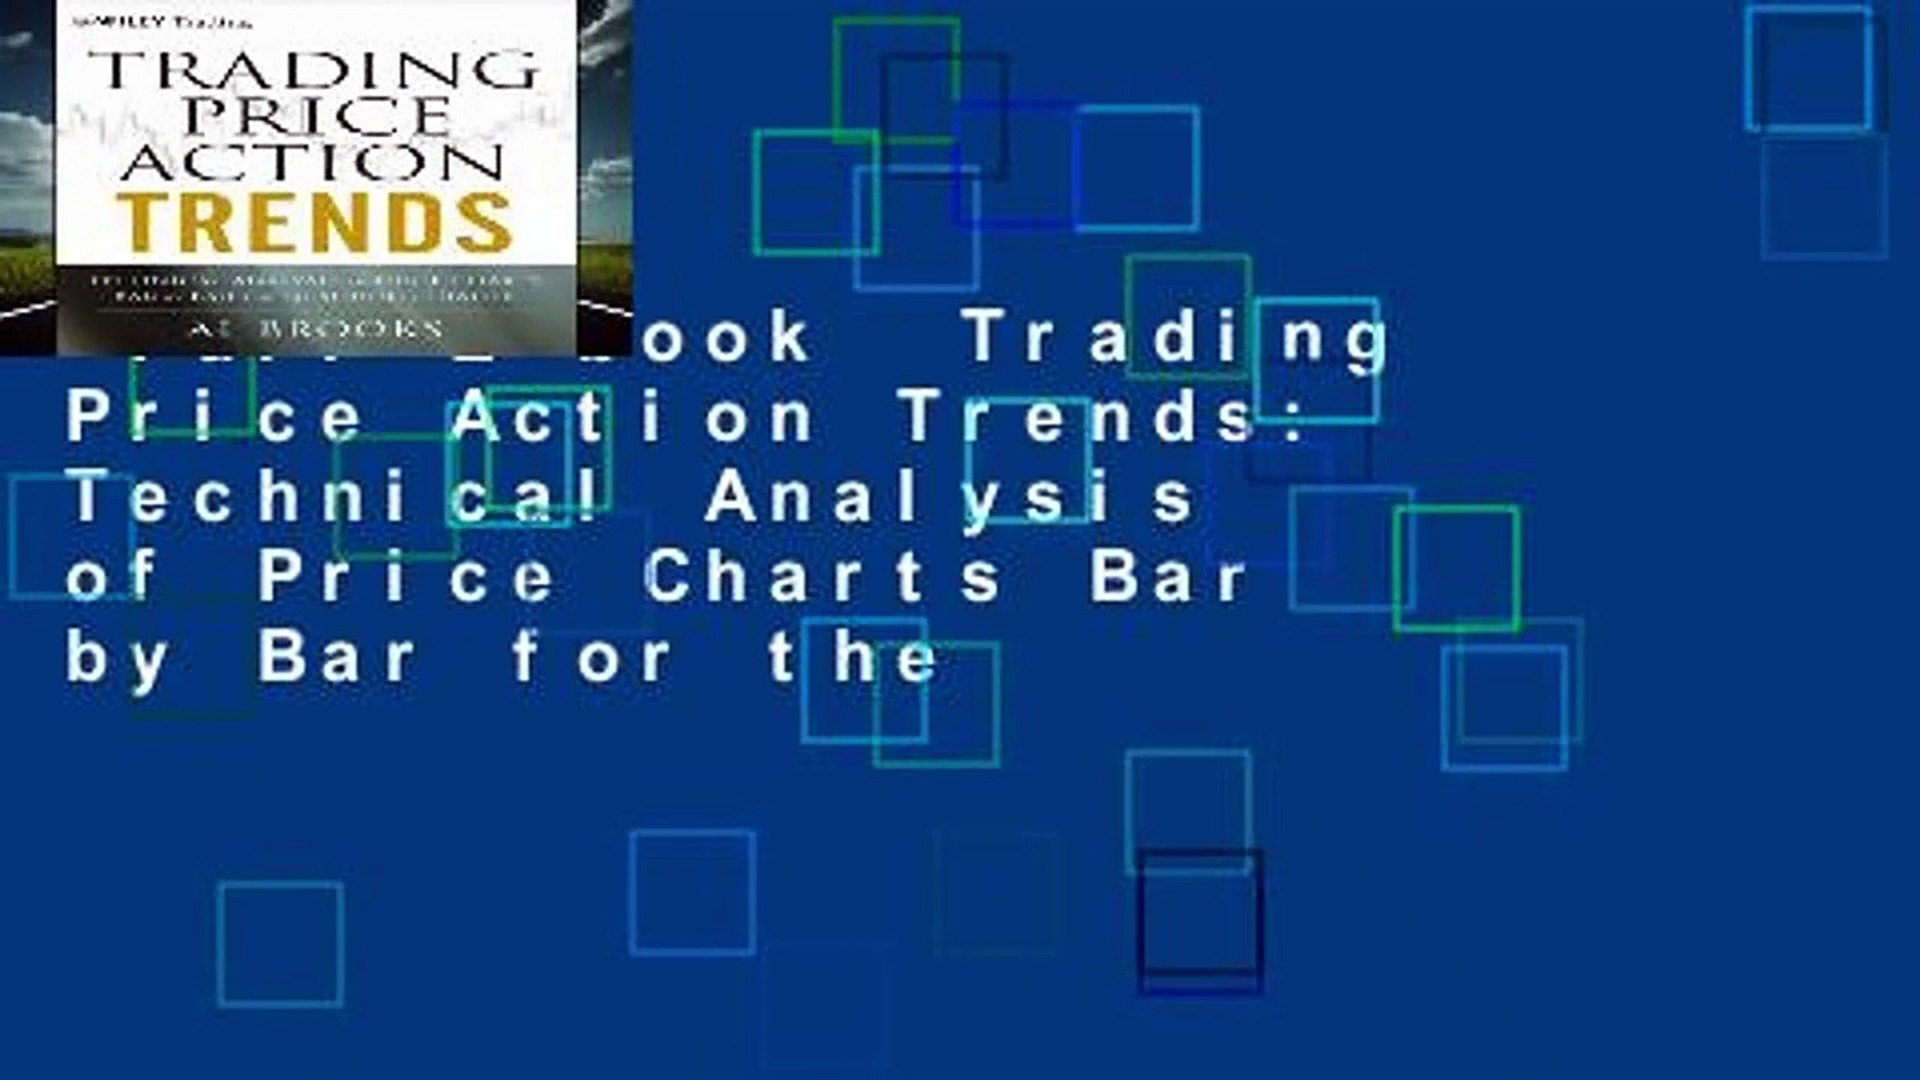 Full E-book  Trading Price Action Trends: Technical Analysis of Price Charts Bar by Bar for the